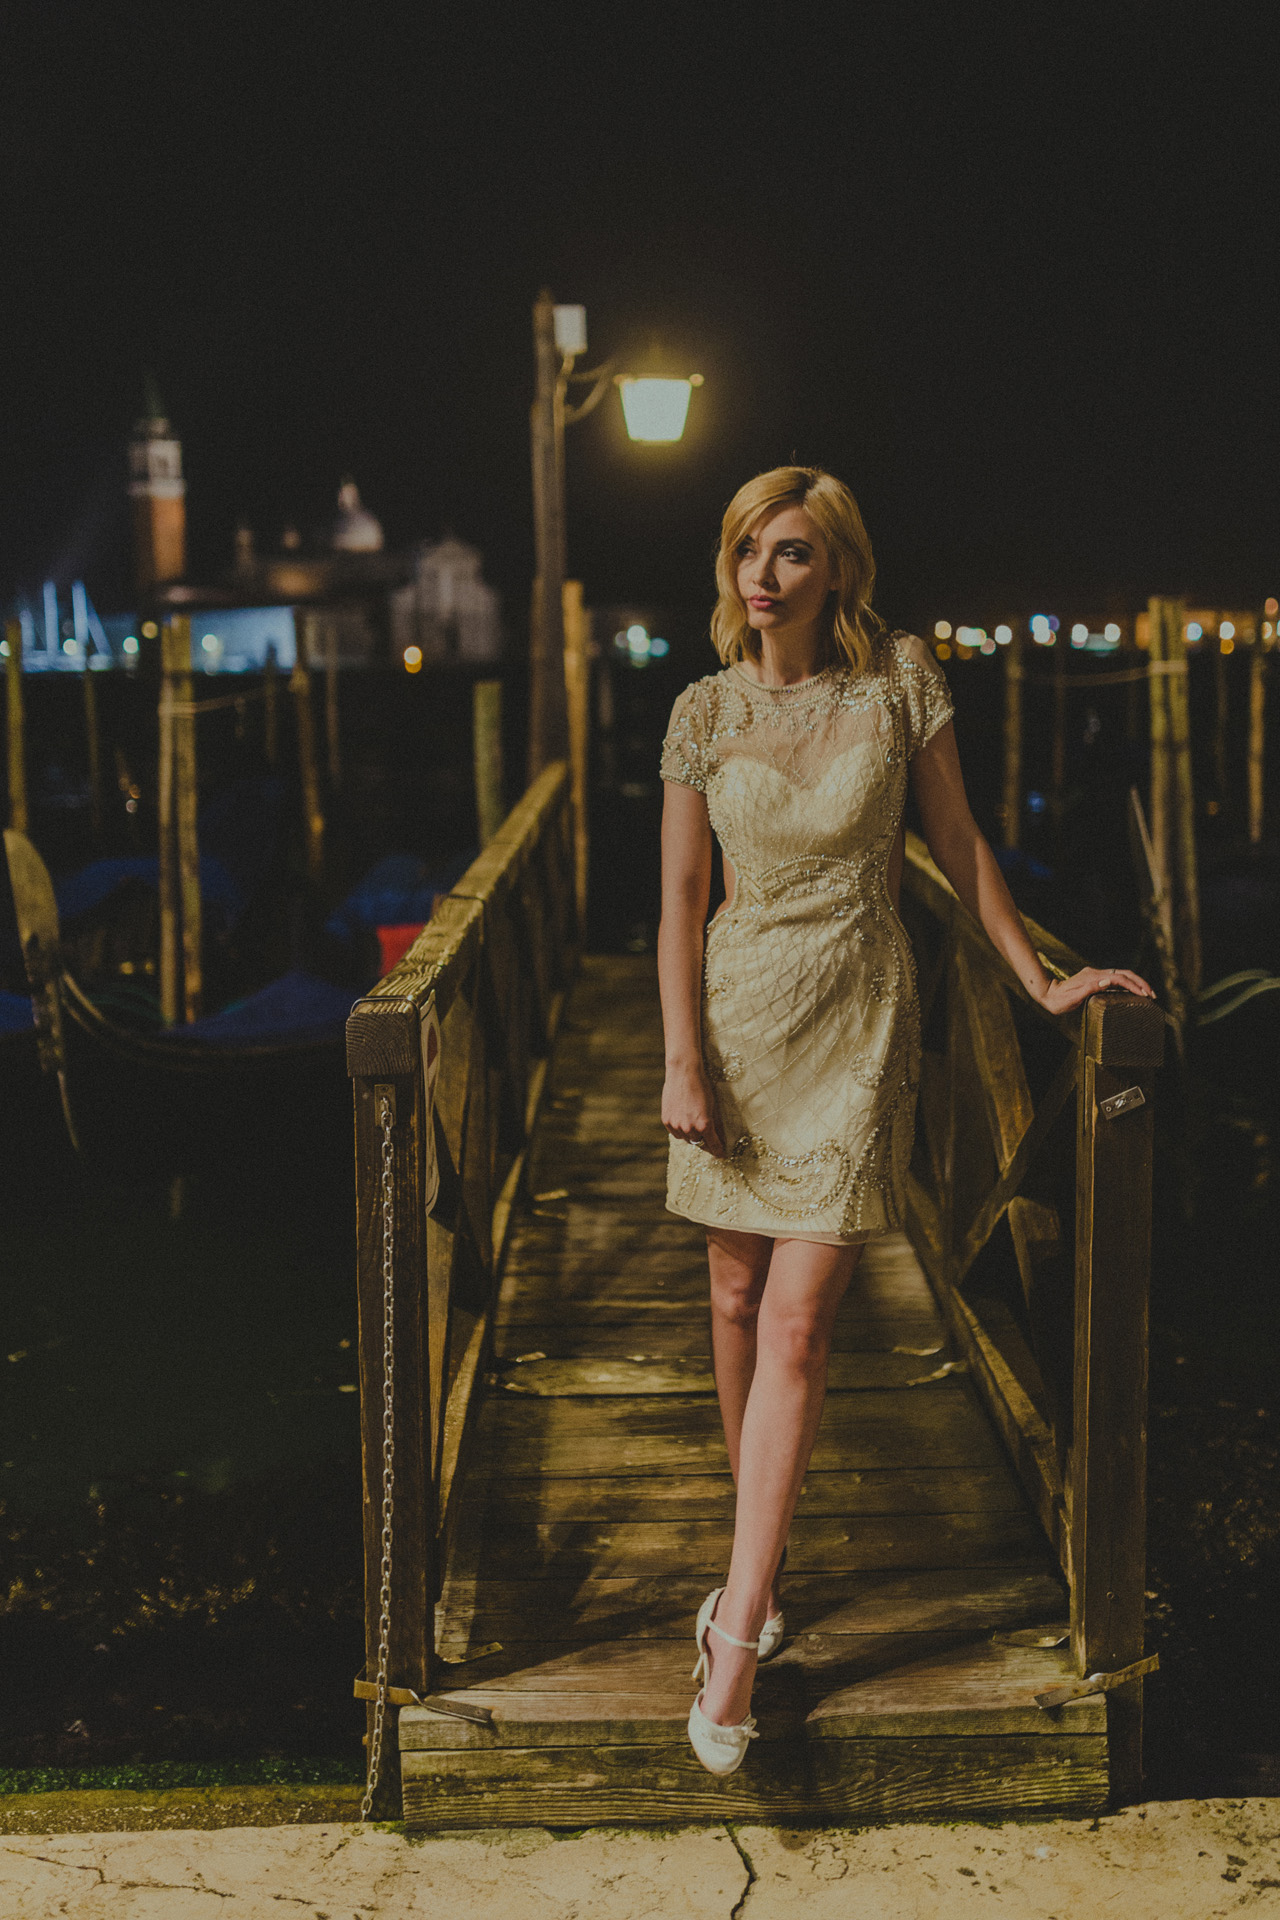 Venice_Elopement_Wedding10